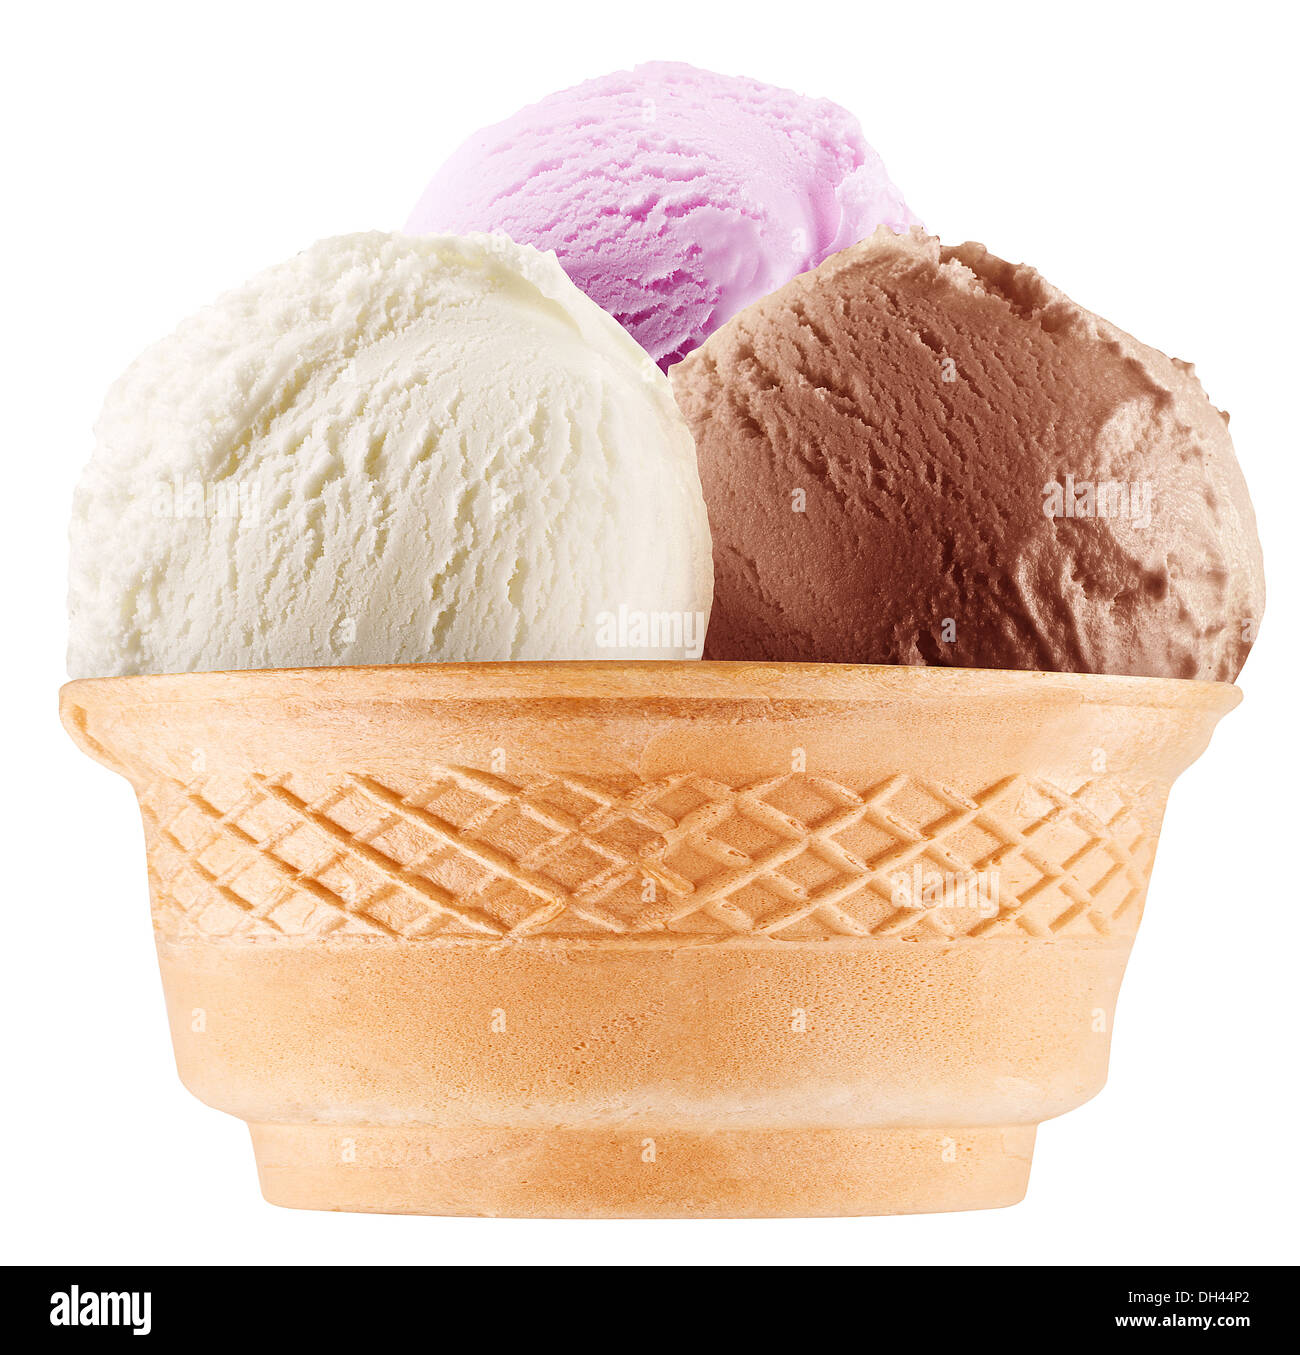 Colorful ice-creams in waffle cones. File contains working path. - Stock Image